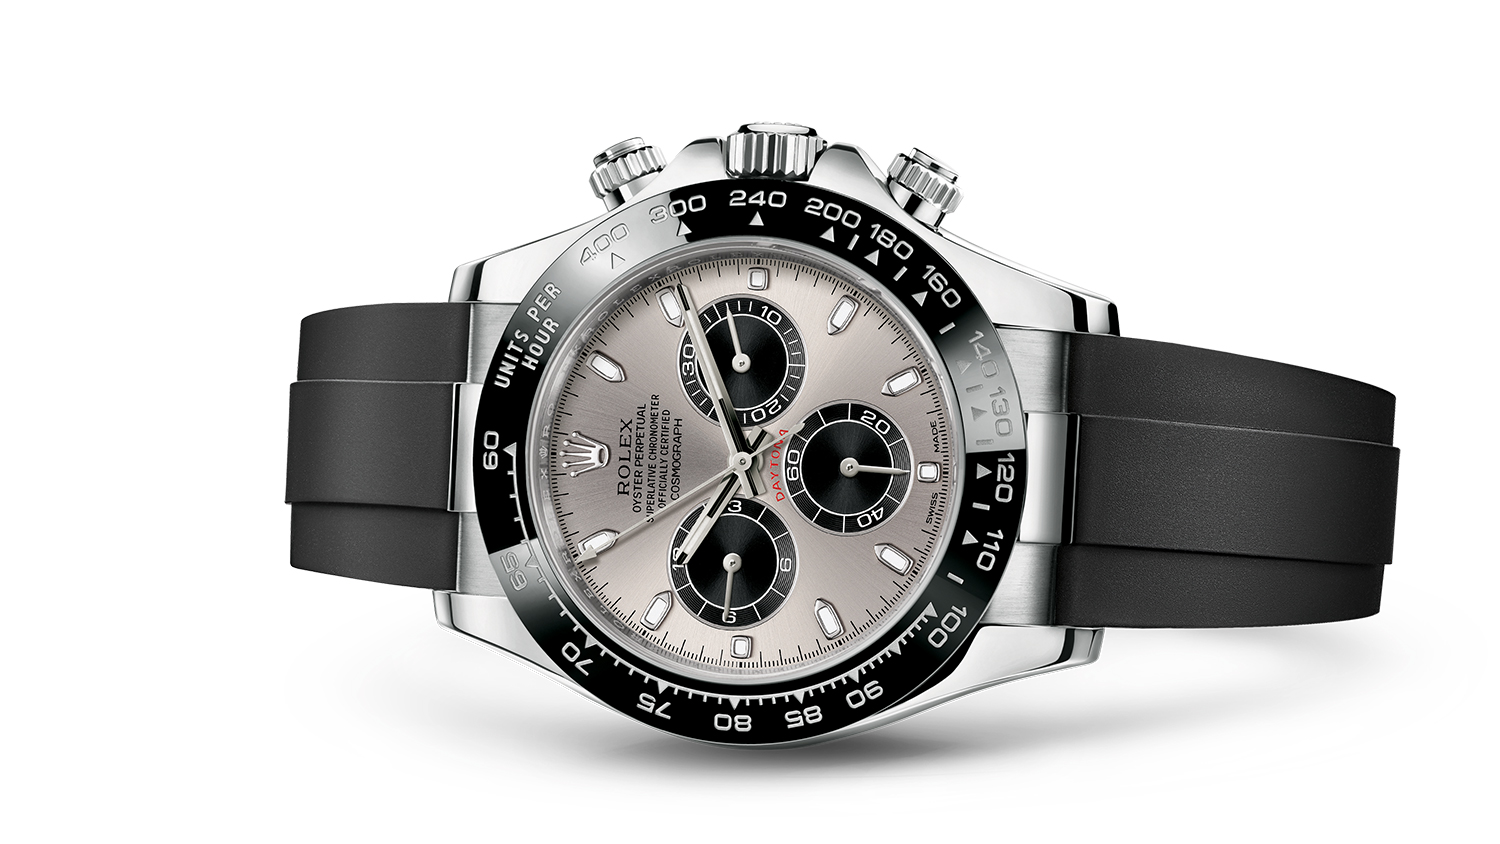 COSMOGRAPH DAYTONA Oyster, 40 mm, white gold